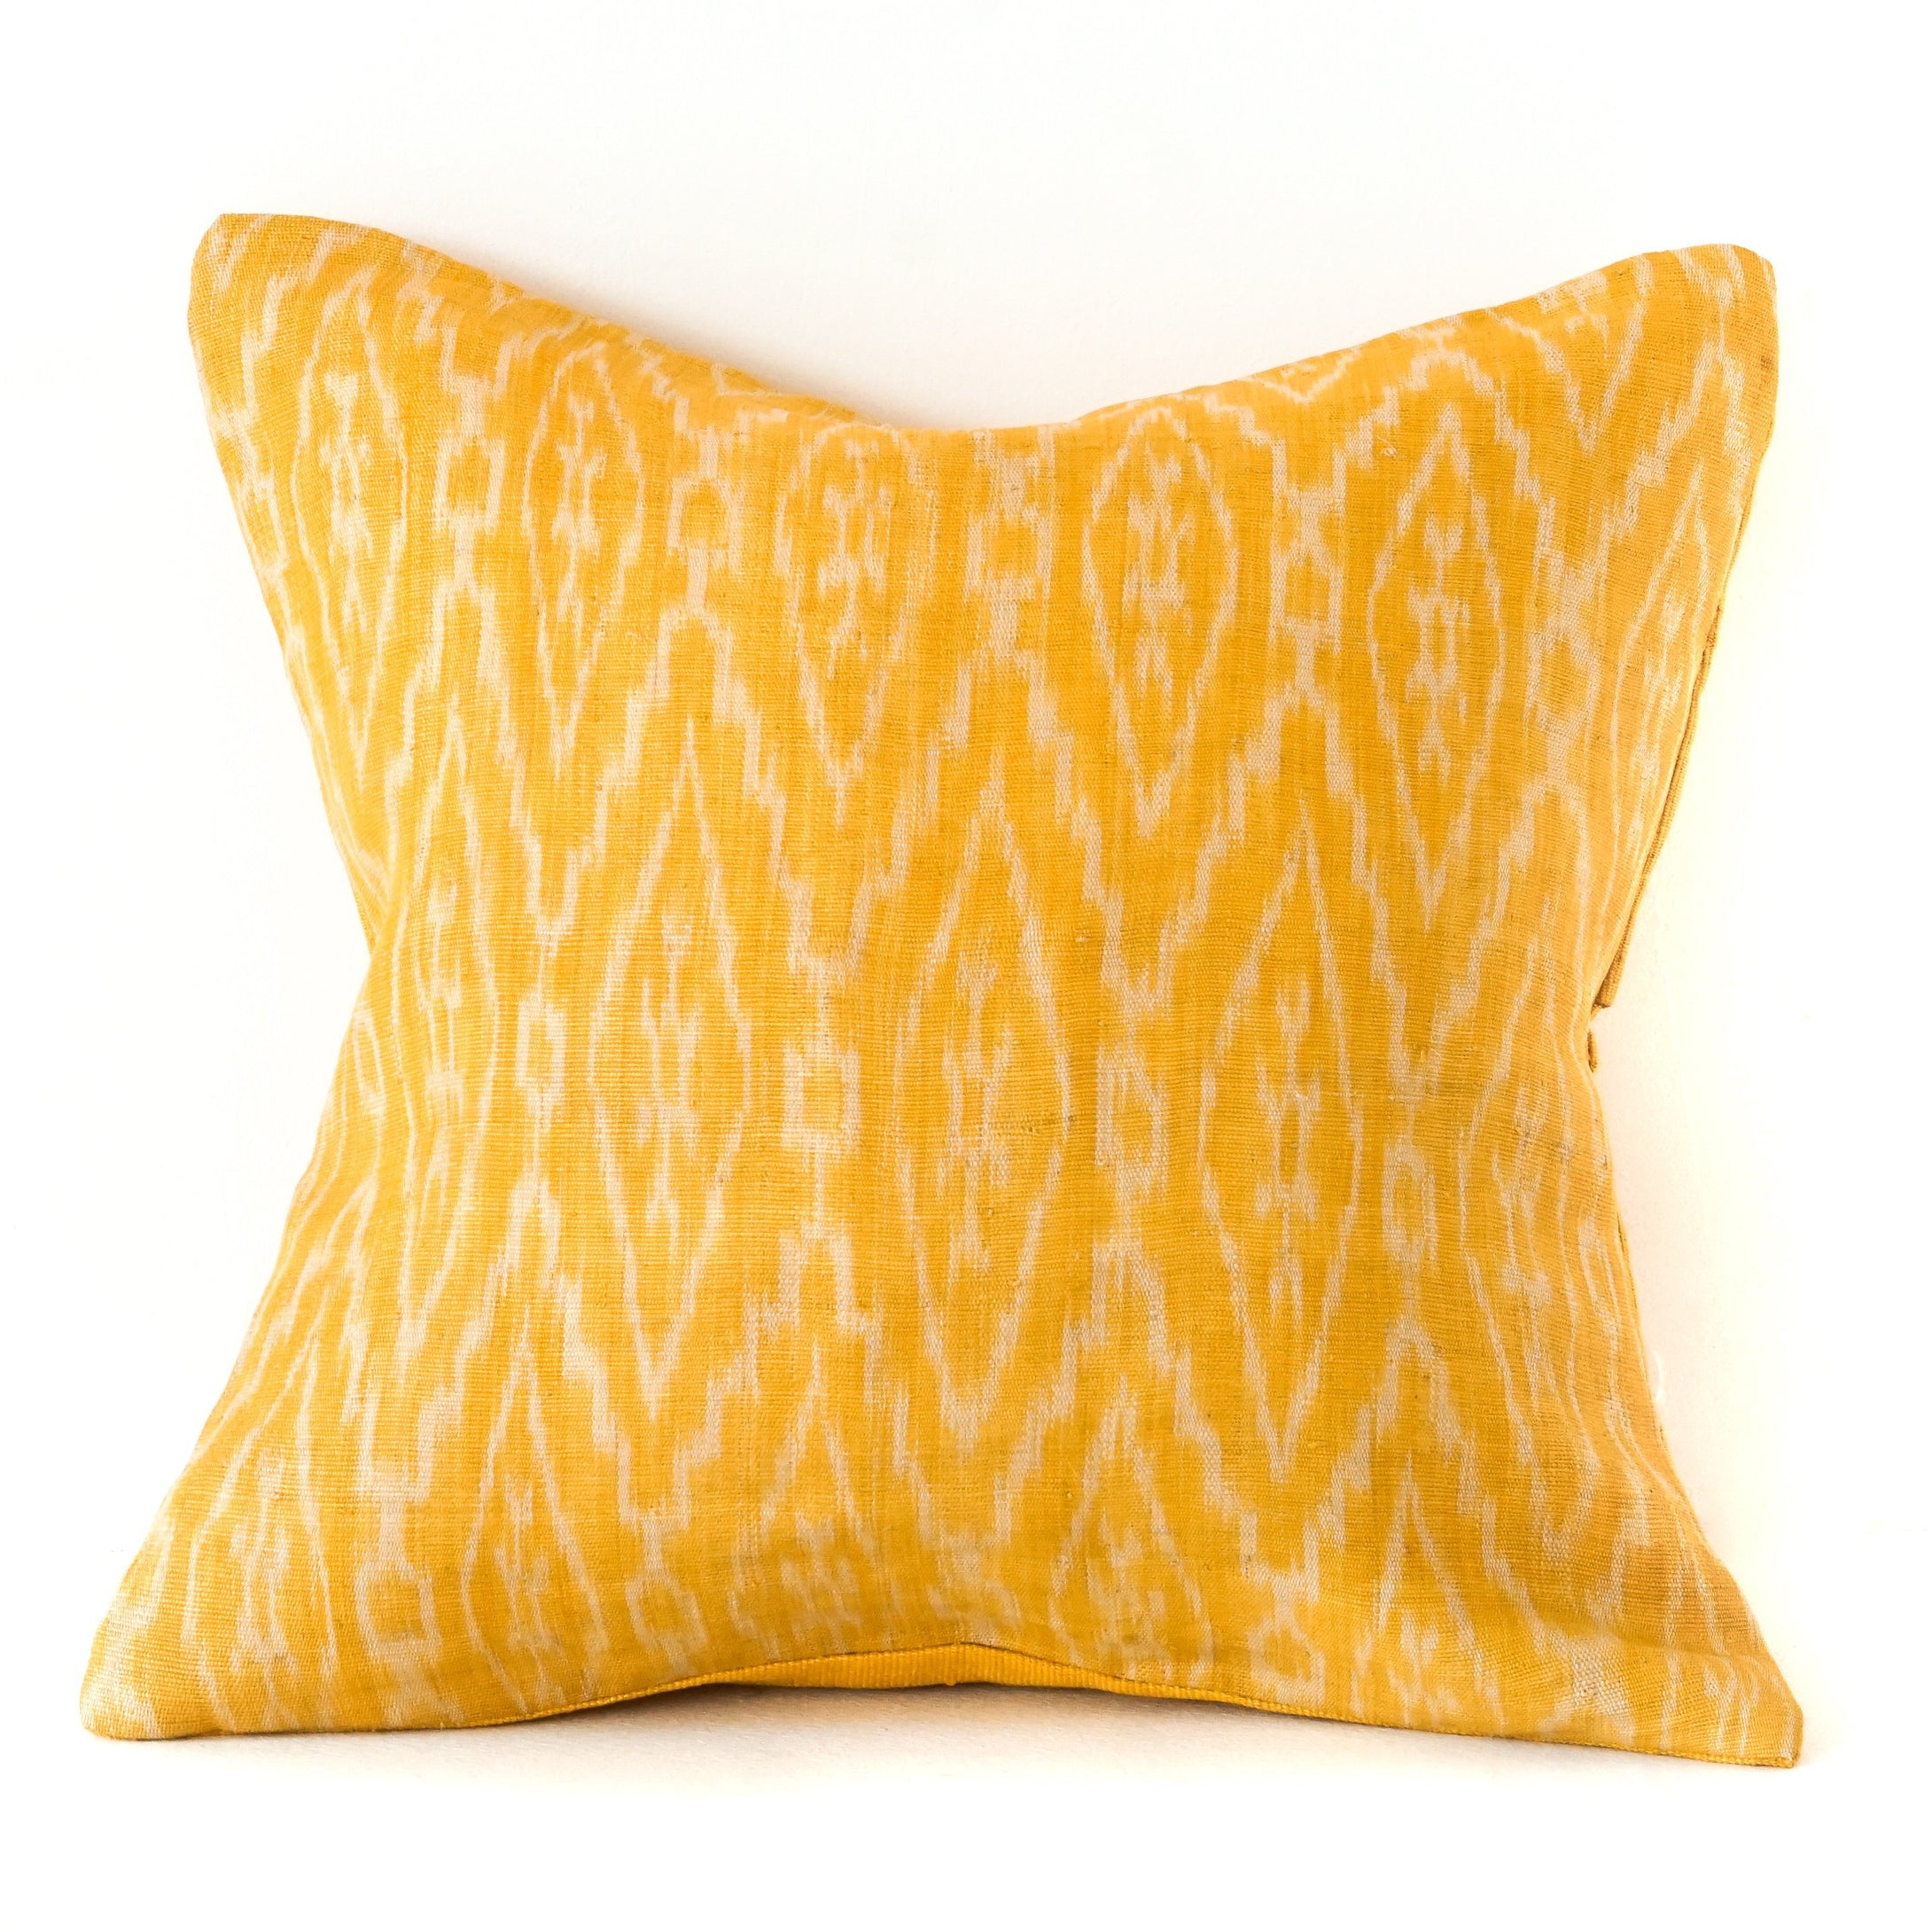 Ochre Ikat Cushion Cushions